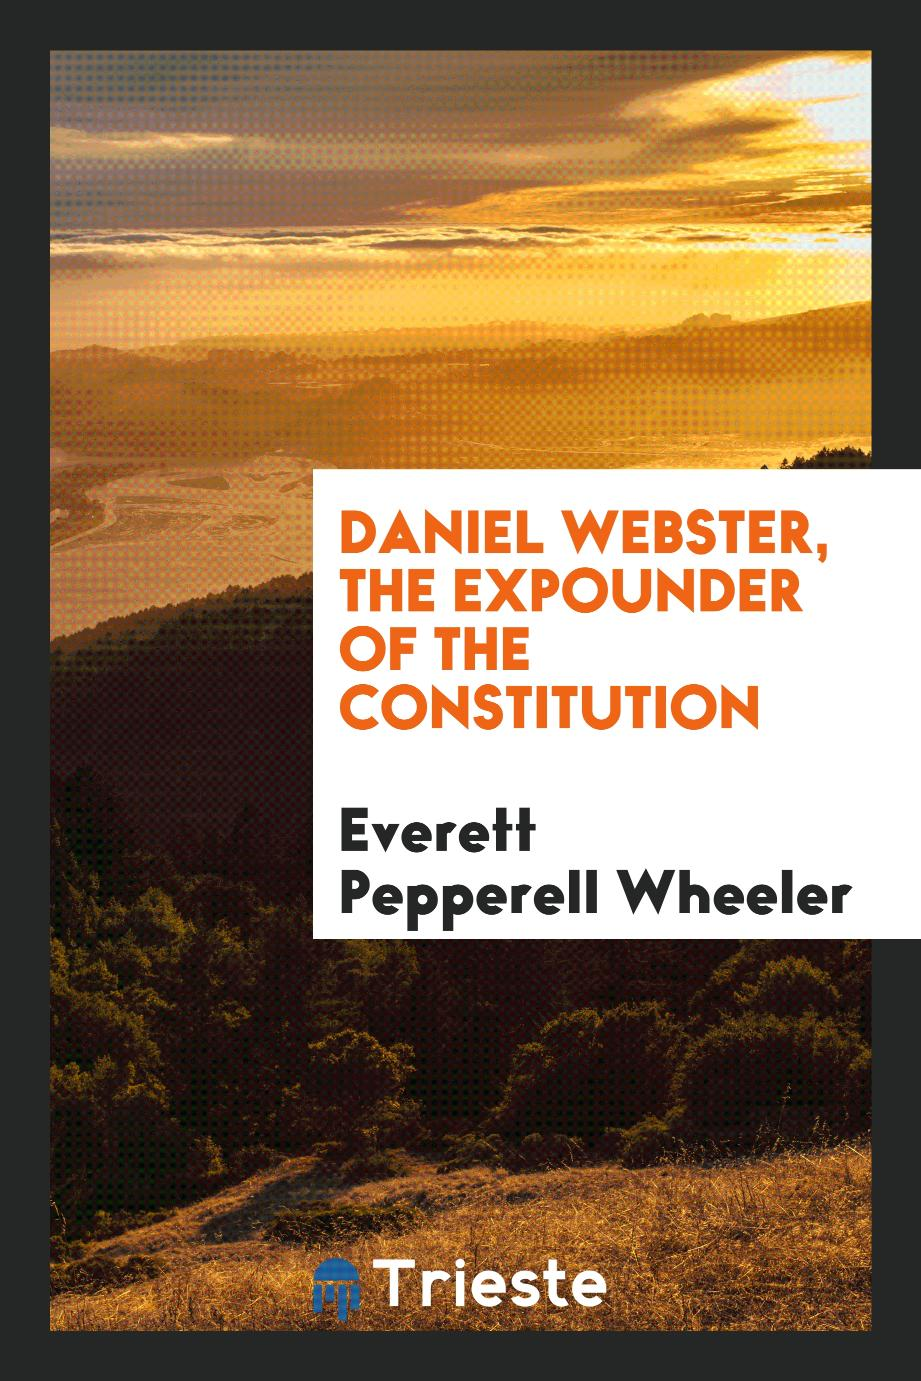 Daniel Webster, the expounder of the Constitution